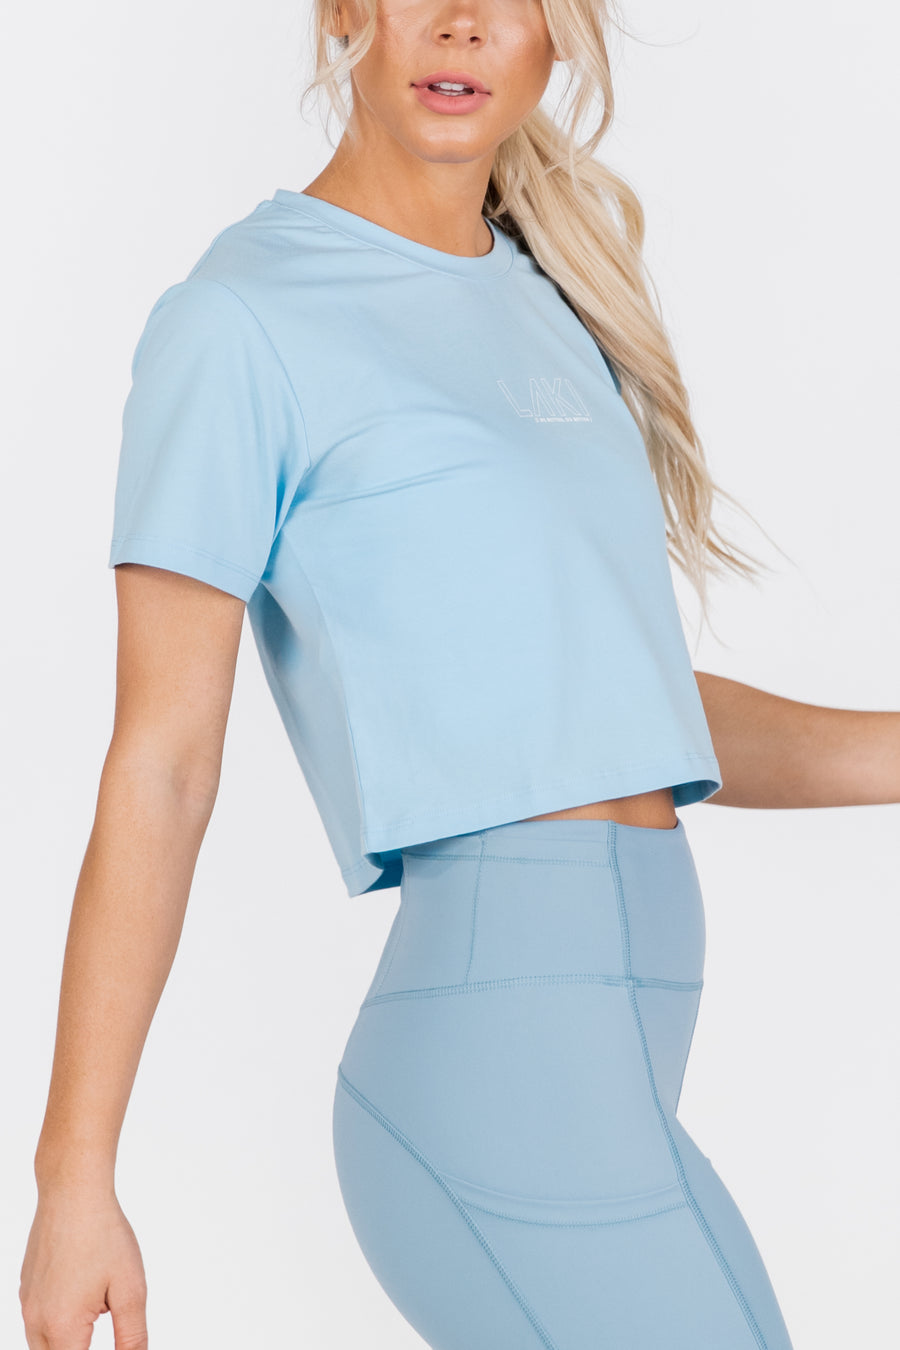 STATEMENT CROP TEE - OCEAN